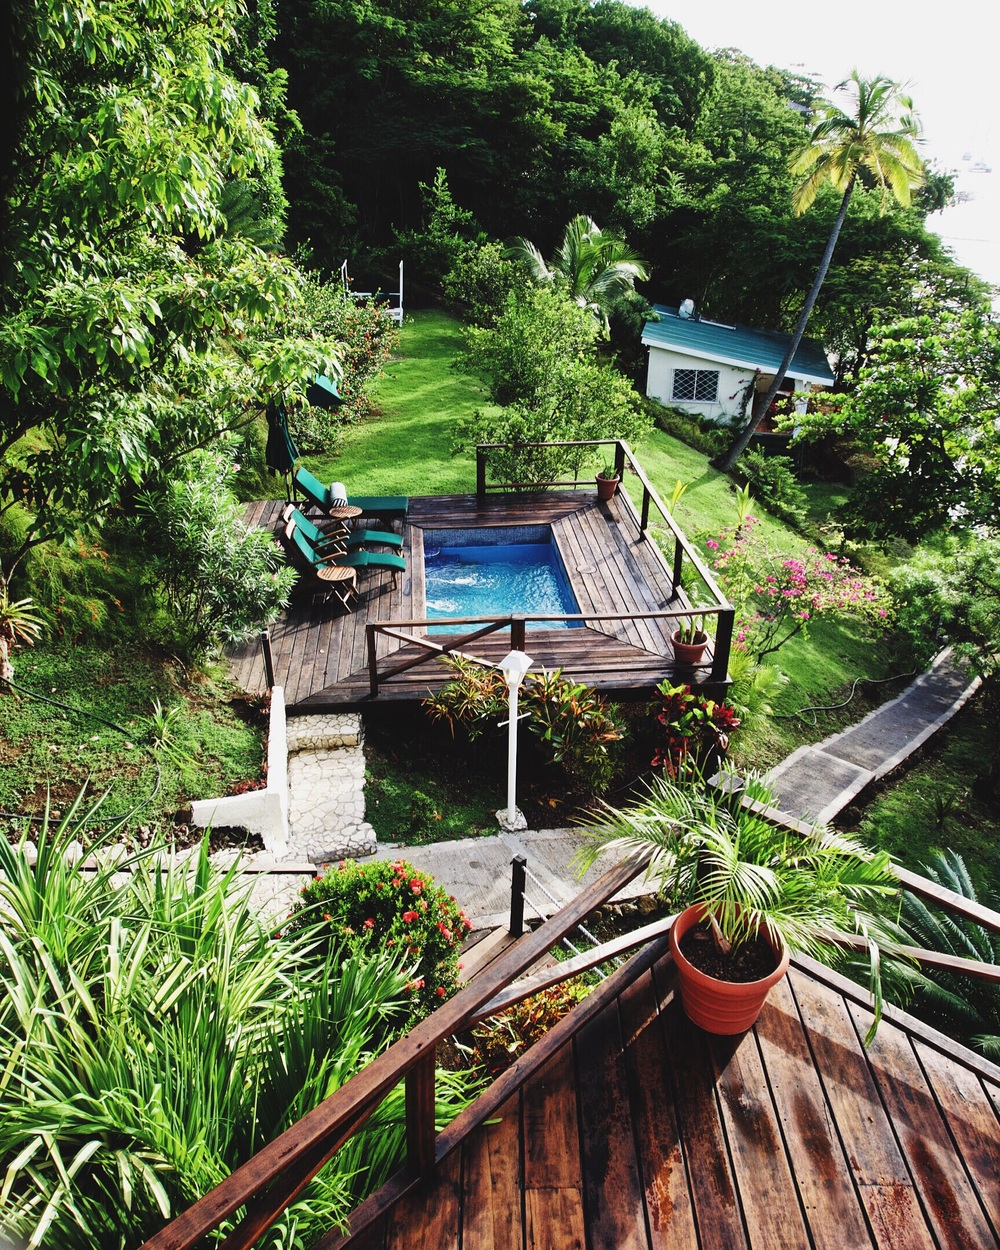 The lush garden view of our Airbnb in Grenada.